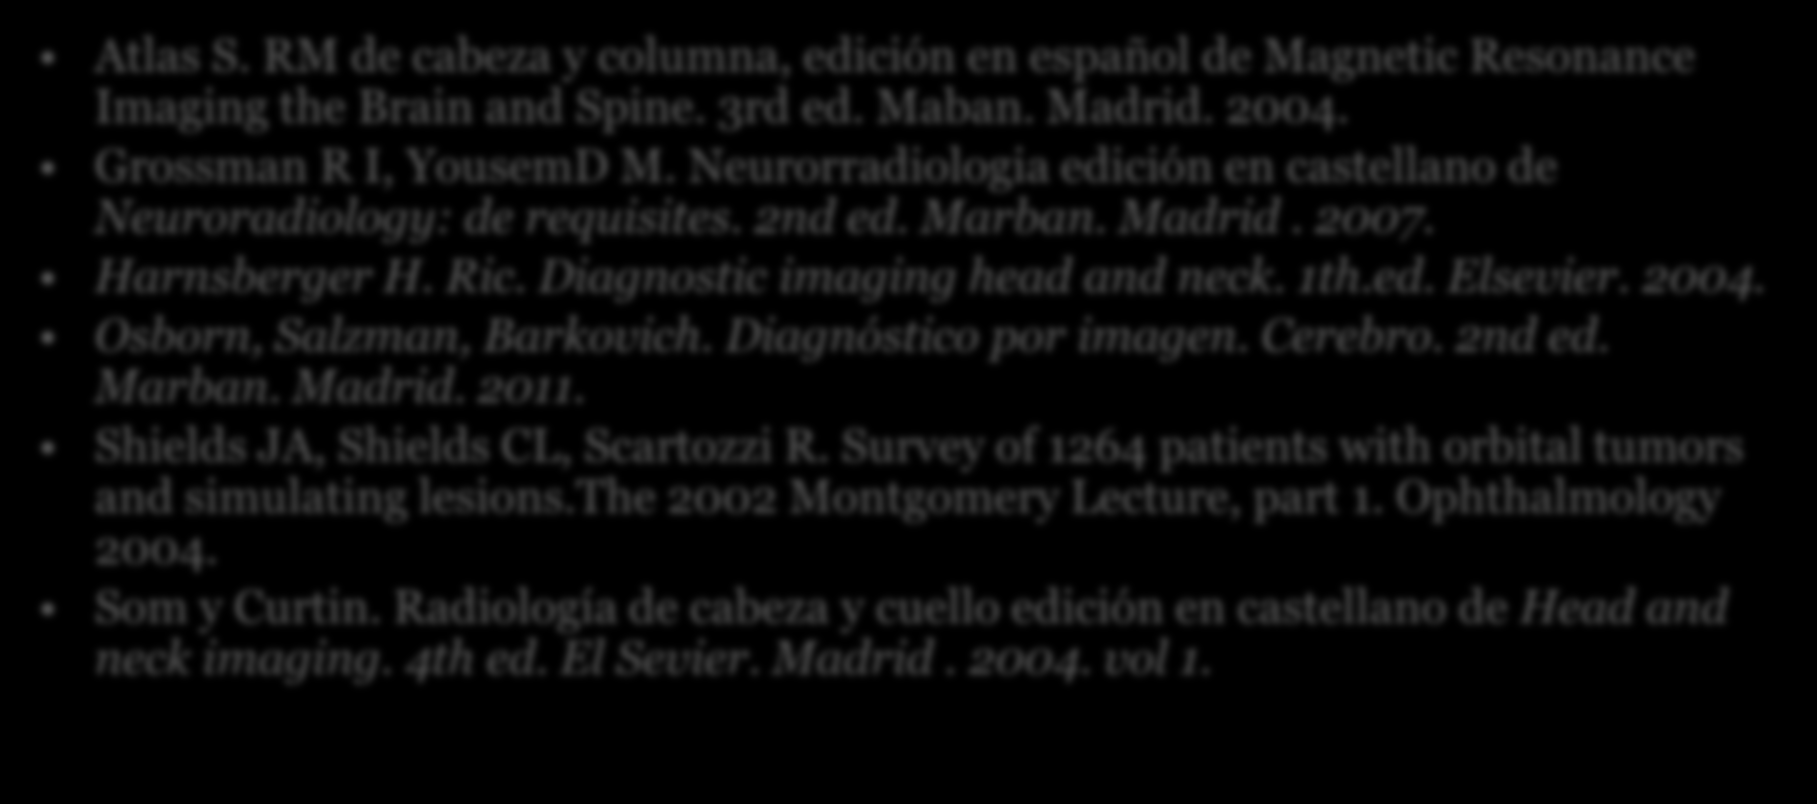 BIBLIOGRAFÍA Atlas S. RM de cabeza y columna, edición en español de Magnetic Resonance Imaging the Brain and Spine. 3rd ed. Maban. Madrid. 2004. Grossman R I, YousemD M.